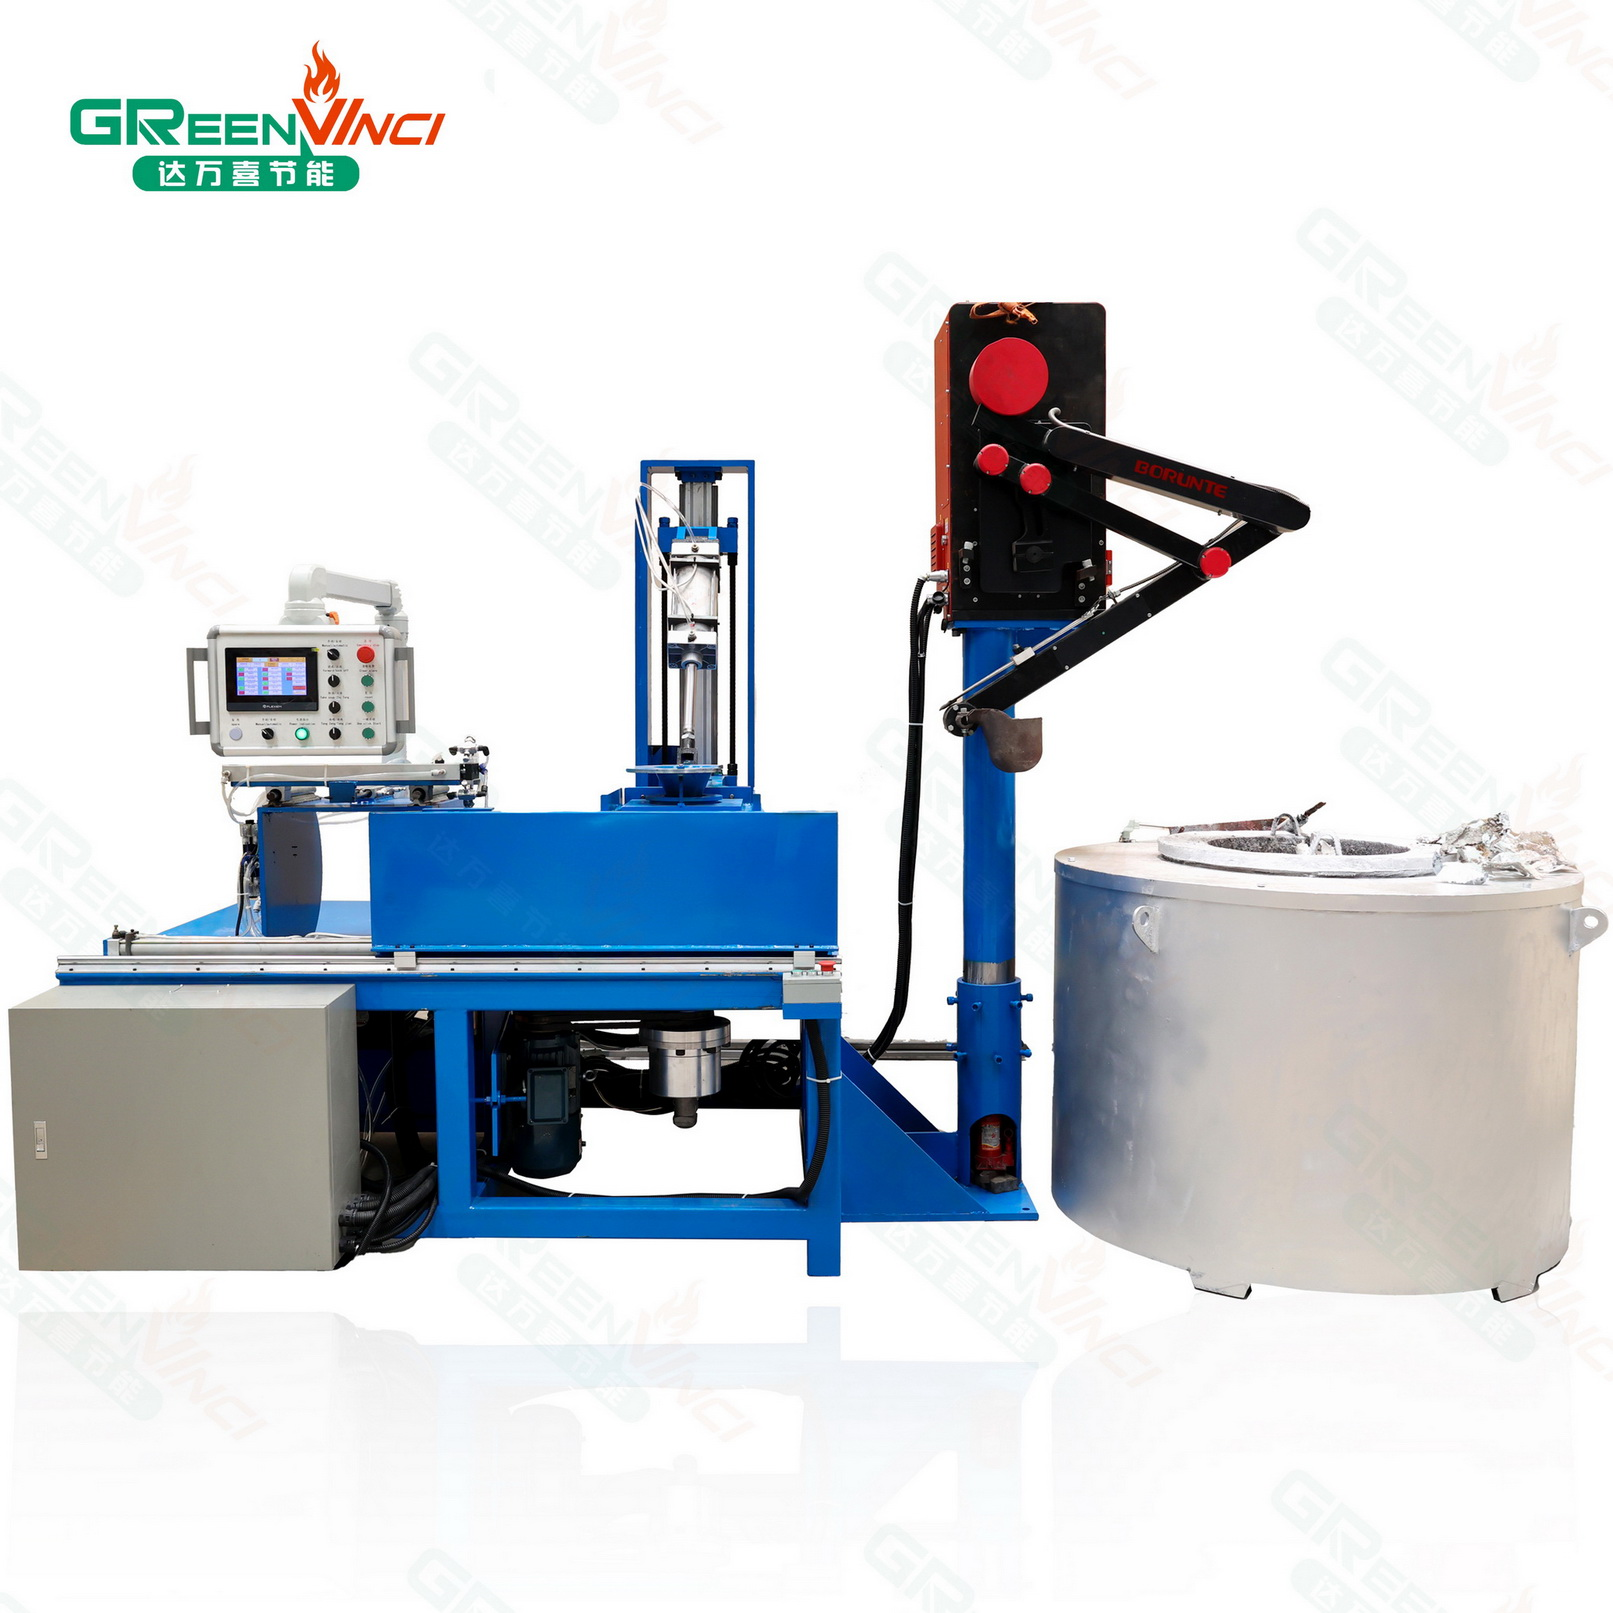 automatic high-efficiency labor-cost saving centrifuge die casting moulding machine ceiling fan cover